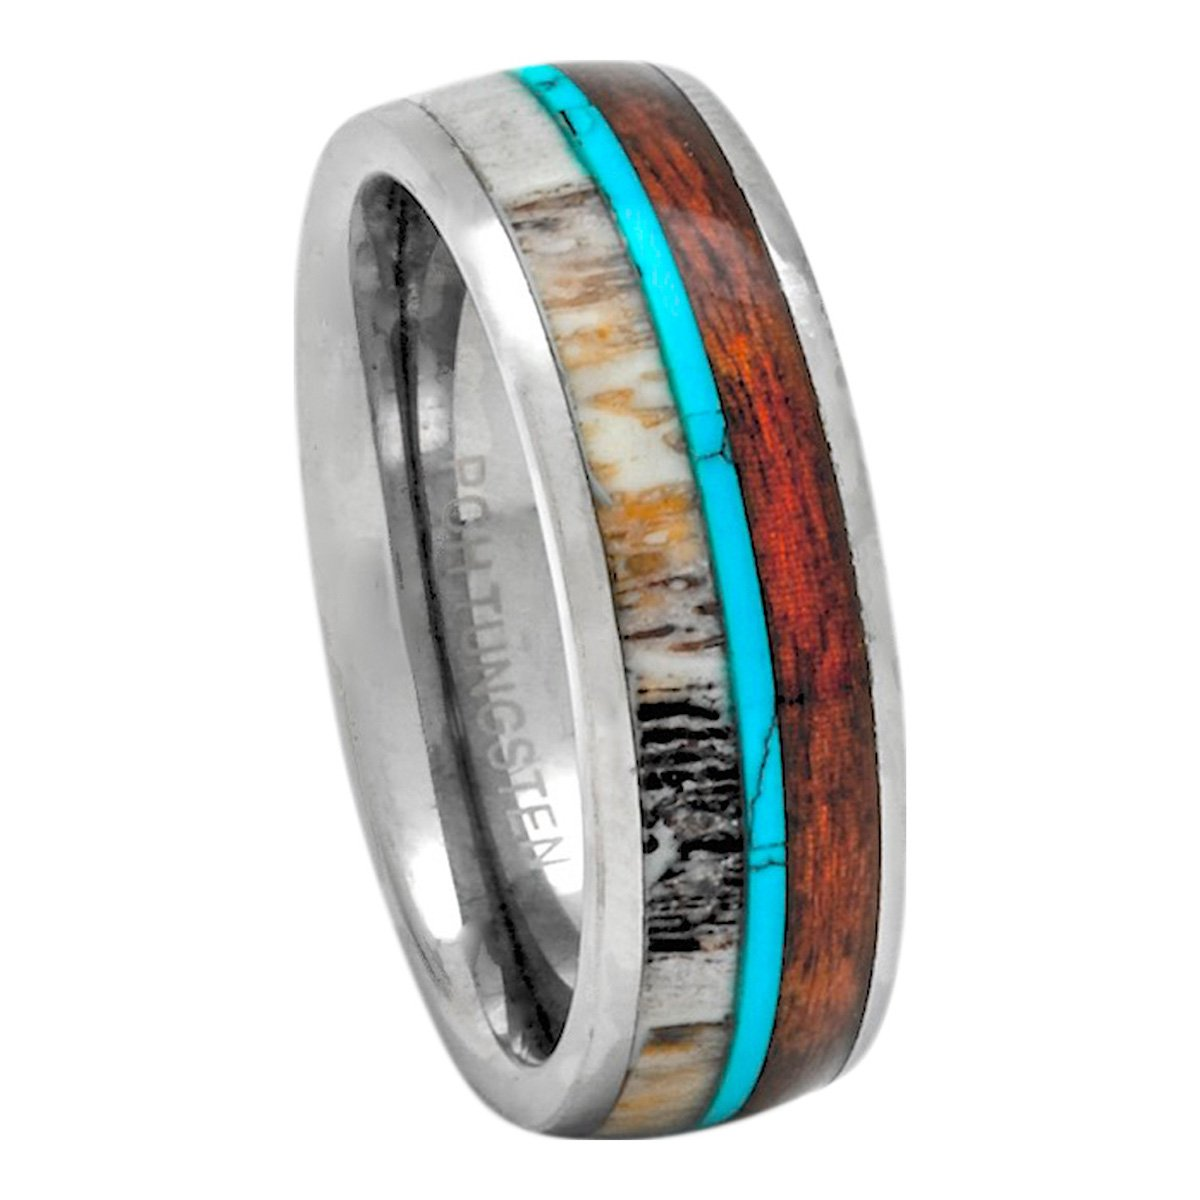 PCH Jewelers Deer Antler Ring Tungsten with Turquoise and Koa Wood 8mm Comfort Fit Band (12)